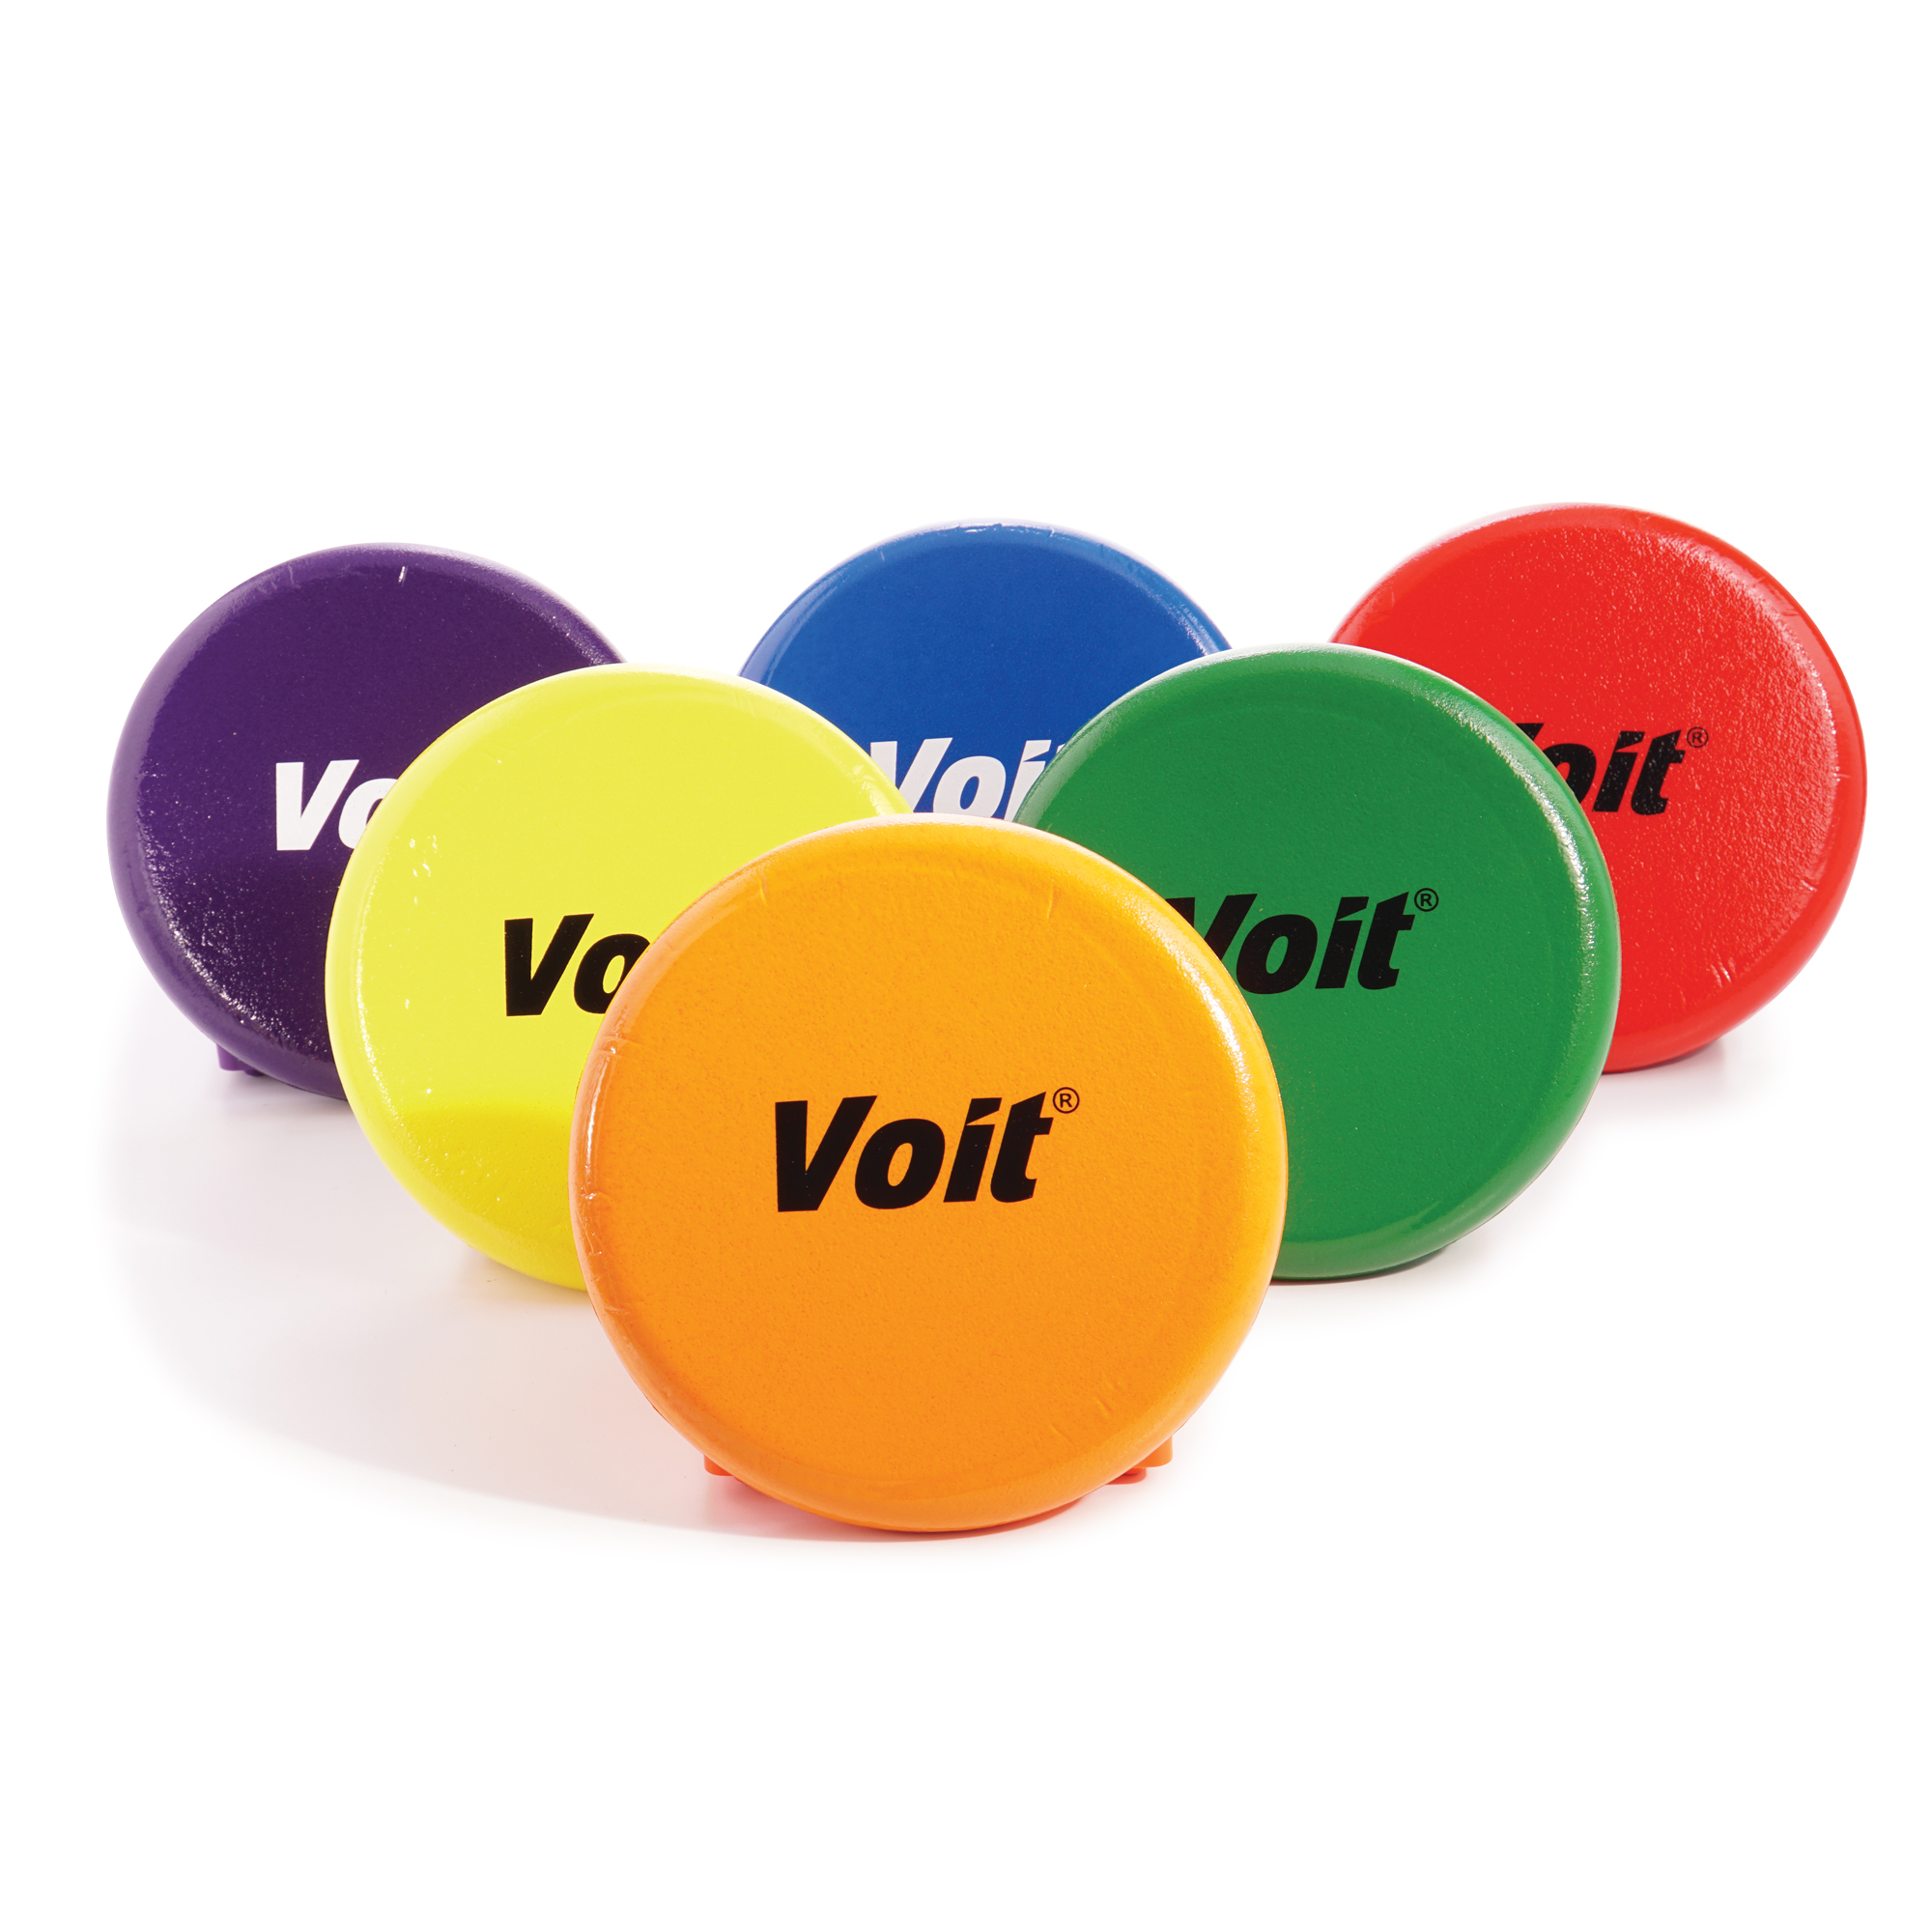 Voit® 8.5 in. Tuff-Coated Foam Flying Discs, Rainbow Pack of 6